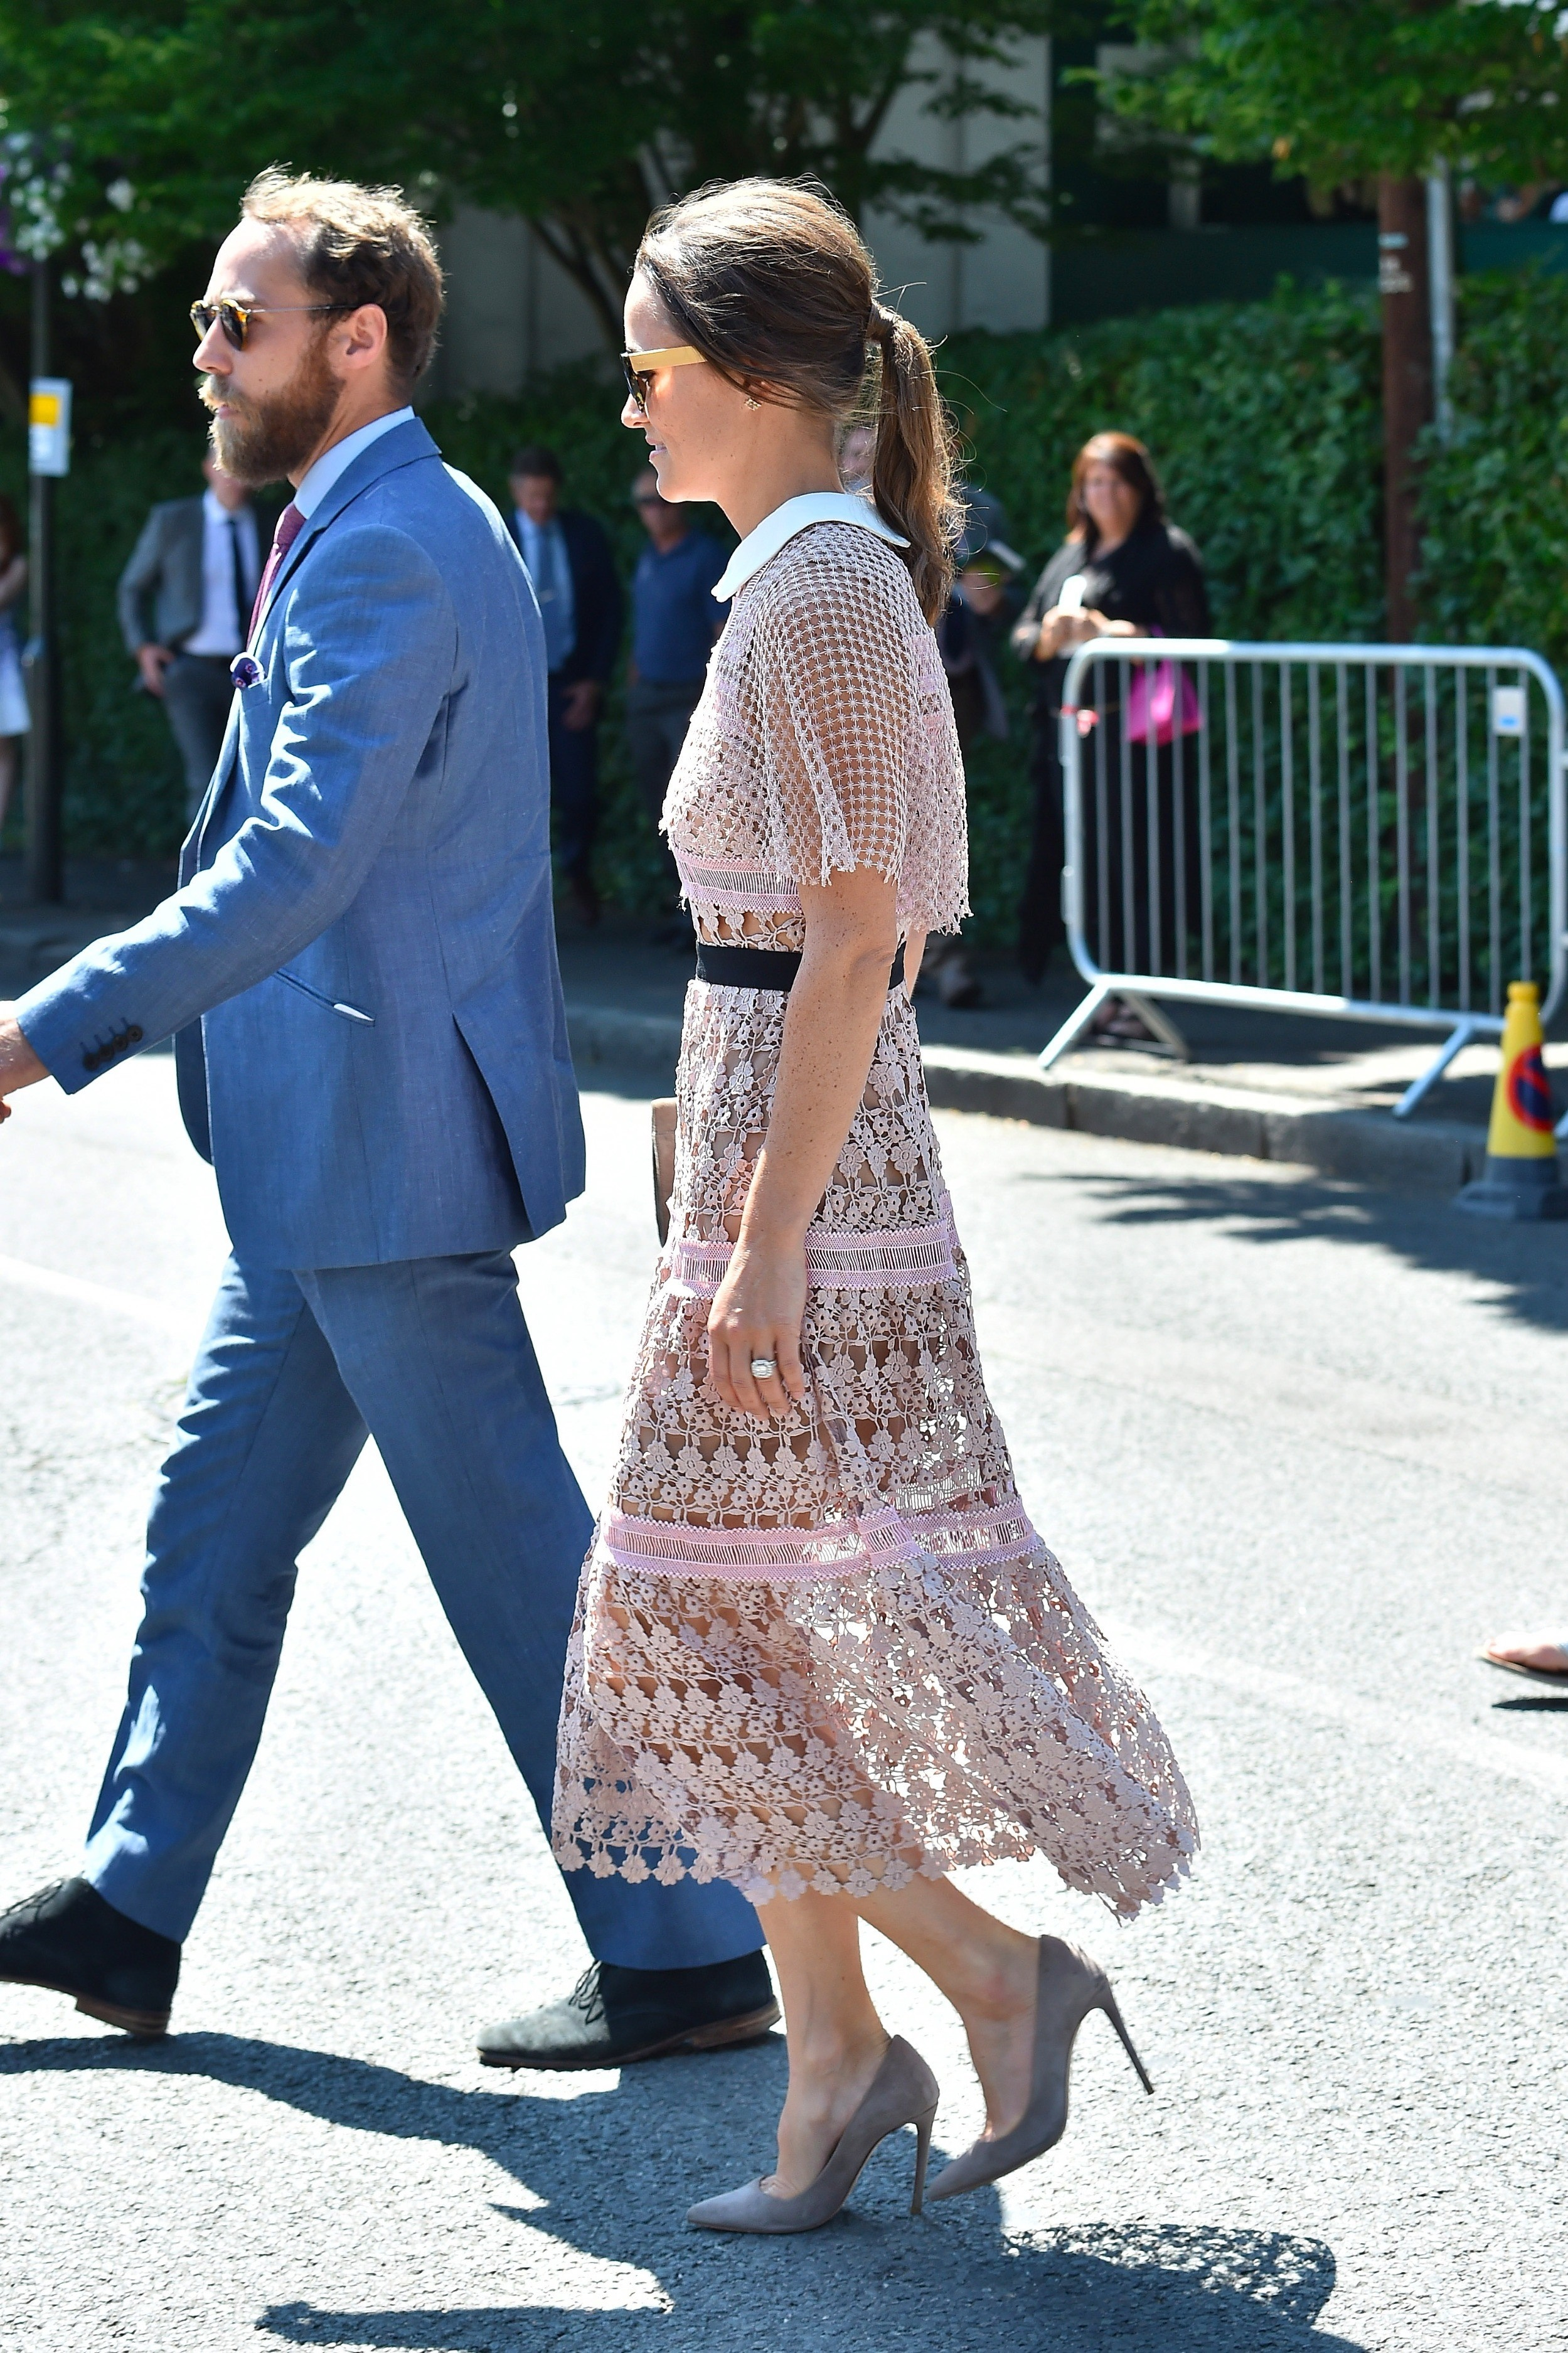 London, UNITED KINGDOM  - Pippa & James Middleton seen arriving for day three at The Championships at Wimbledon.  BACKGRID UK 5 JULY 2017, Image: 340911590, License: Rights-managed, Restrictions: , Model Release: no, Credit line: Profimedia, Xposurephotos